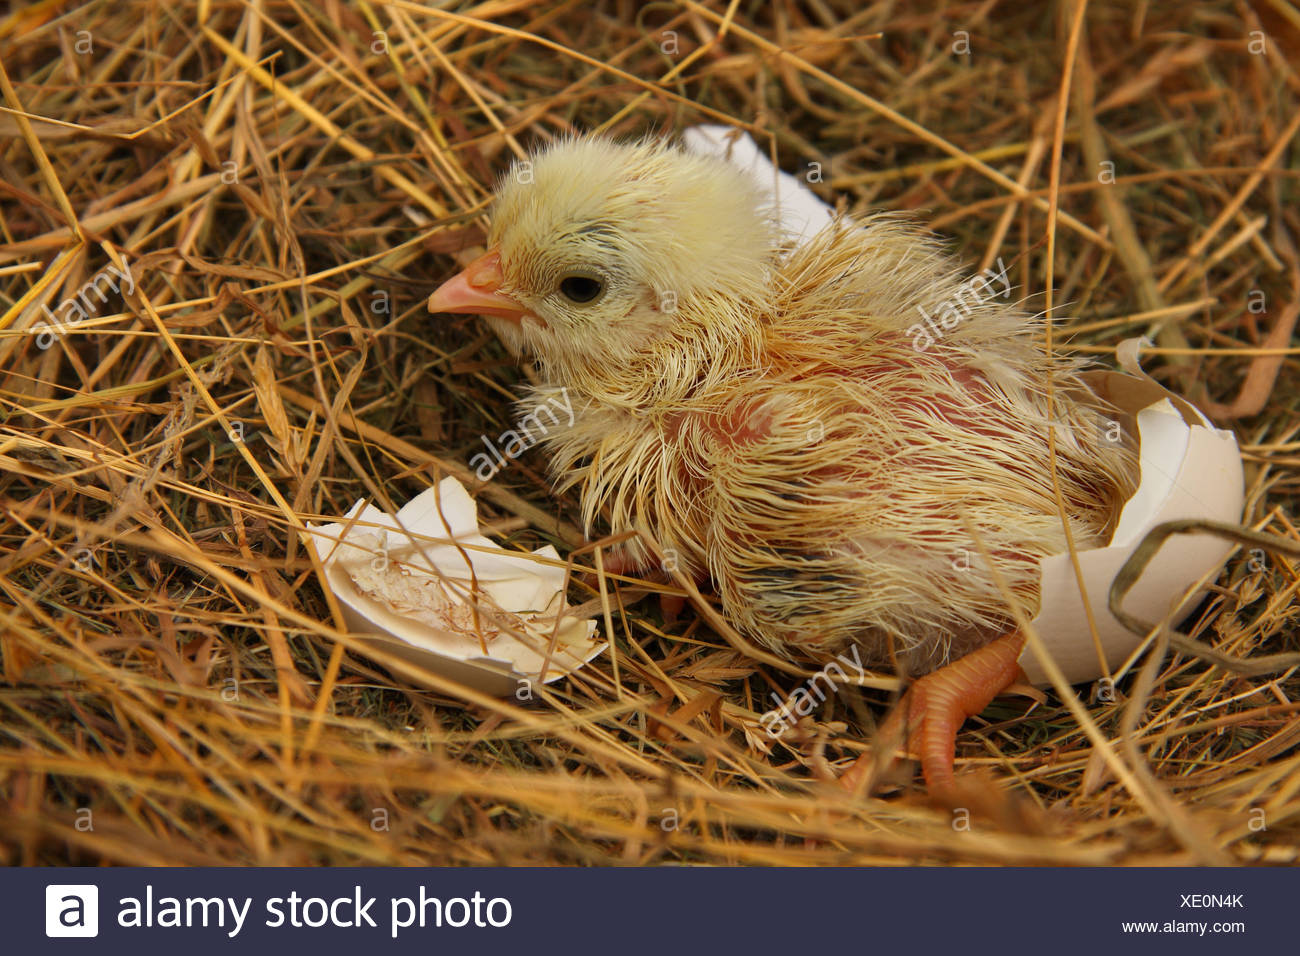 A recently hatched chicken chick in the nest still damp and with pieces of egg shell around it. - Stock Image